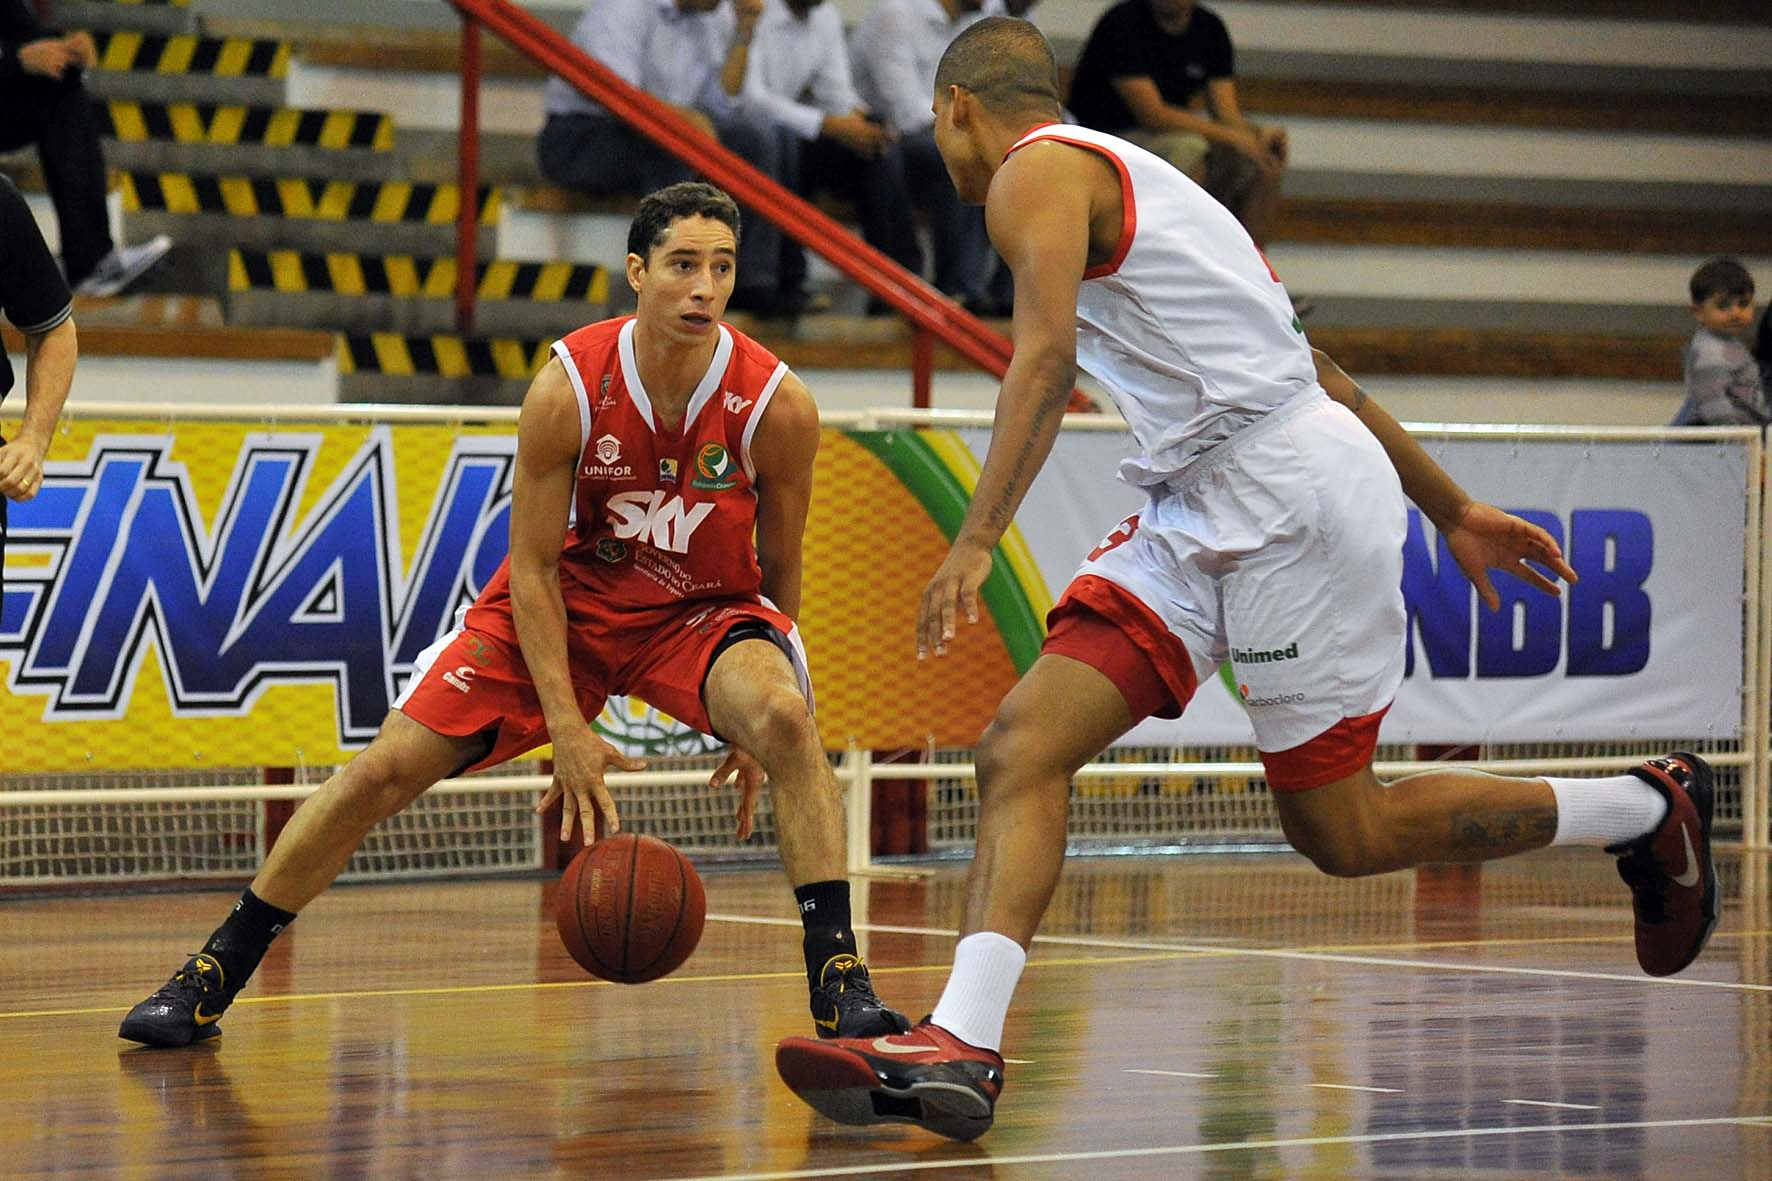 Matheus, do Basquete Cearense